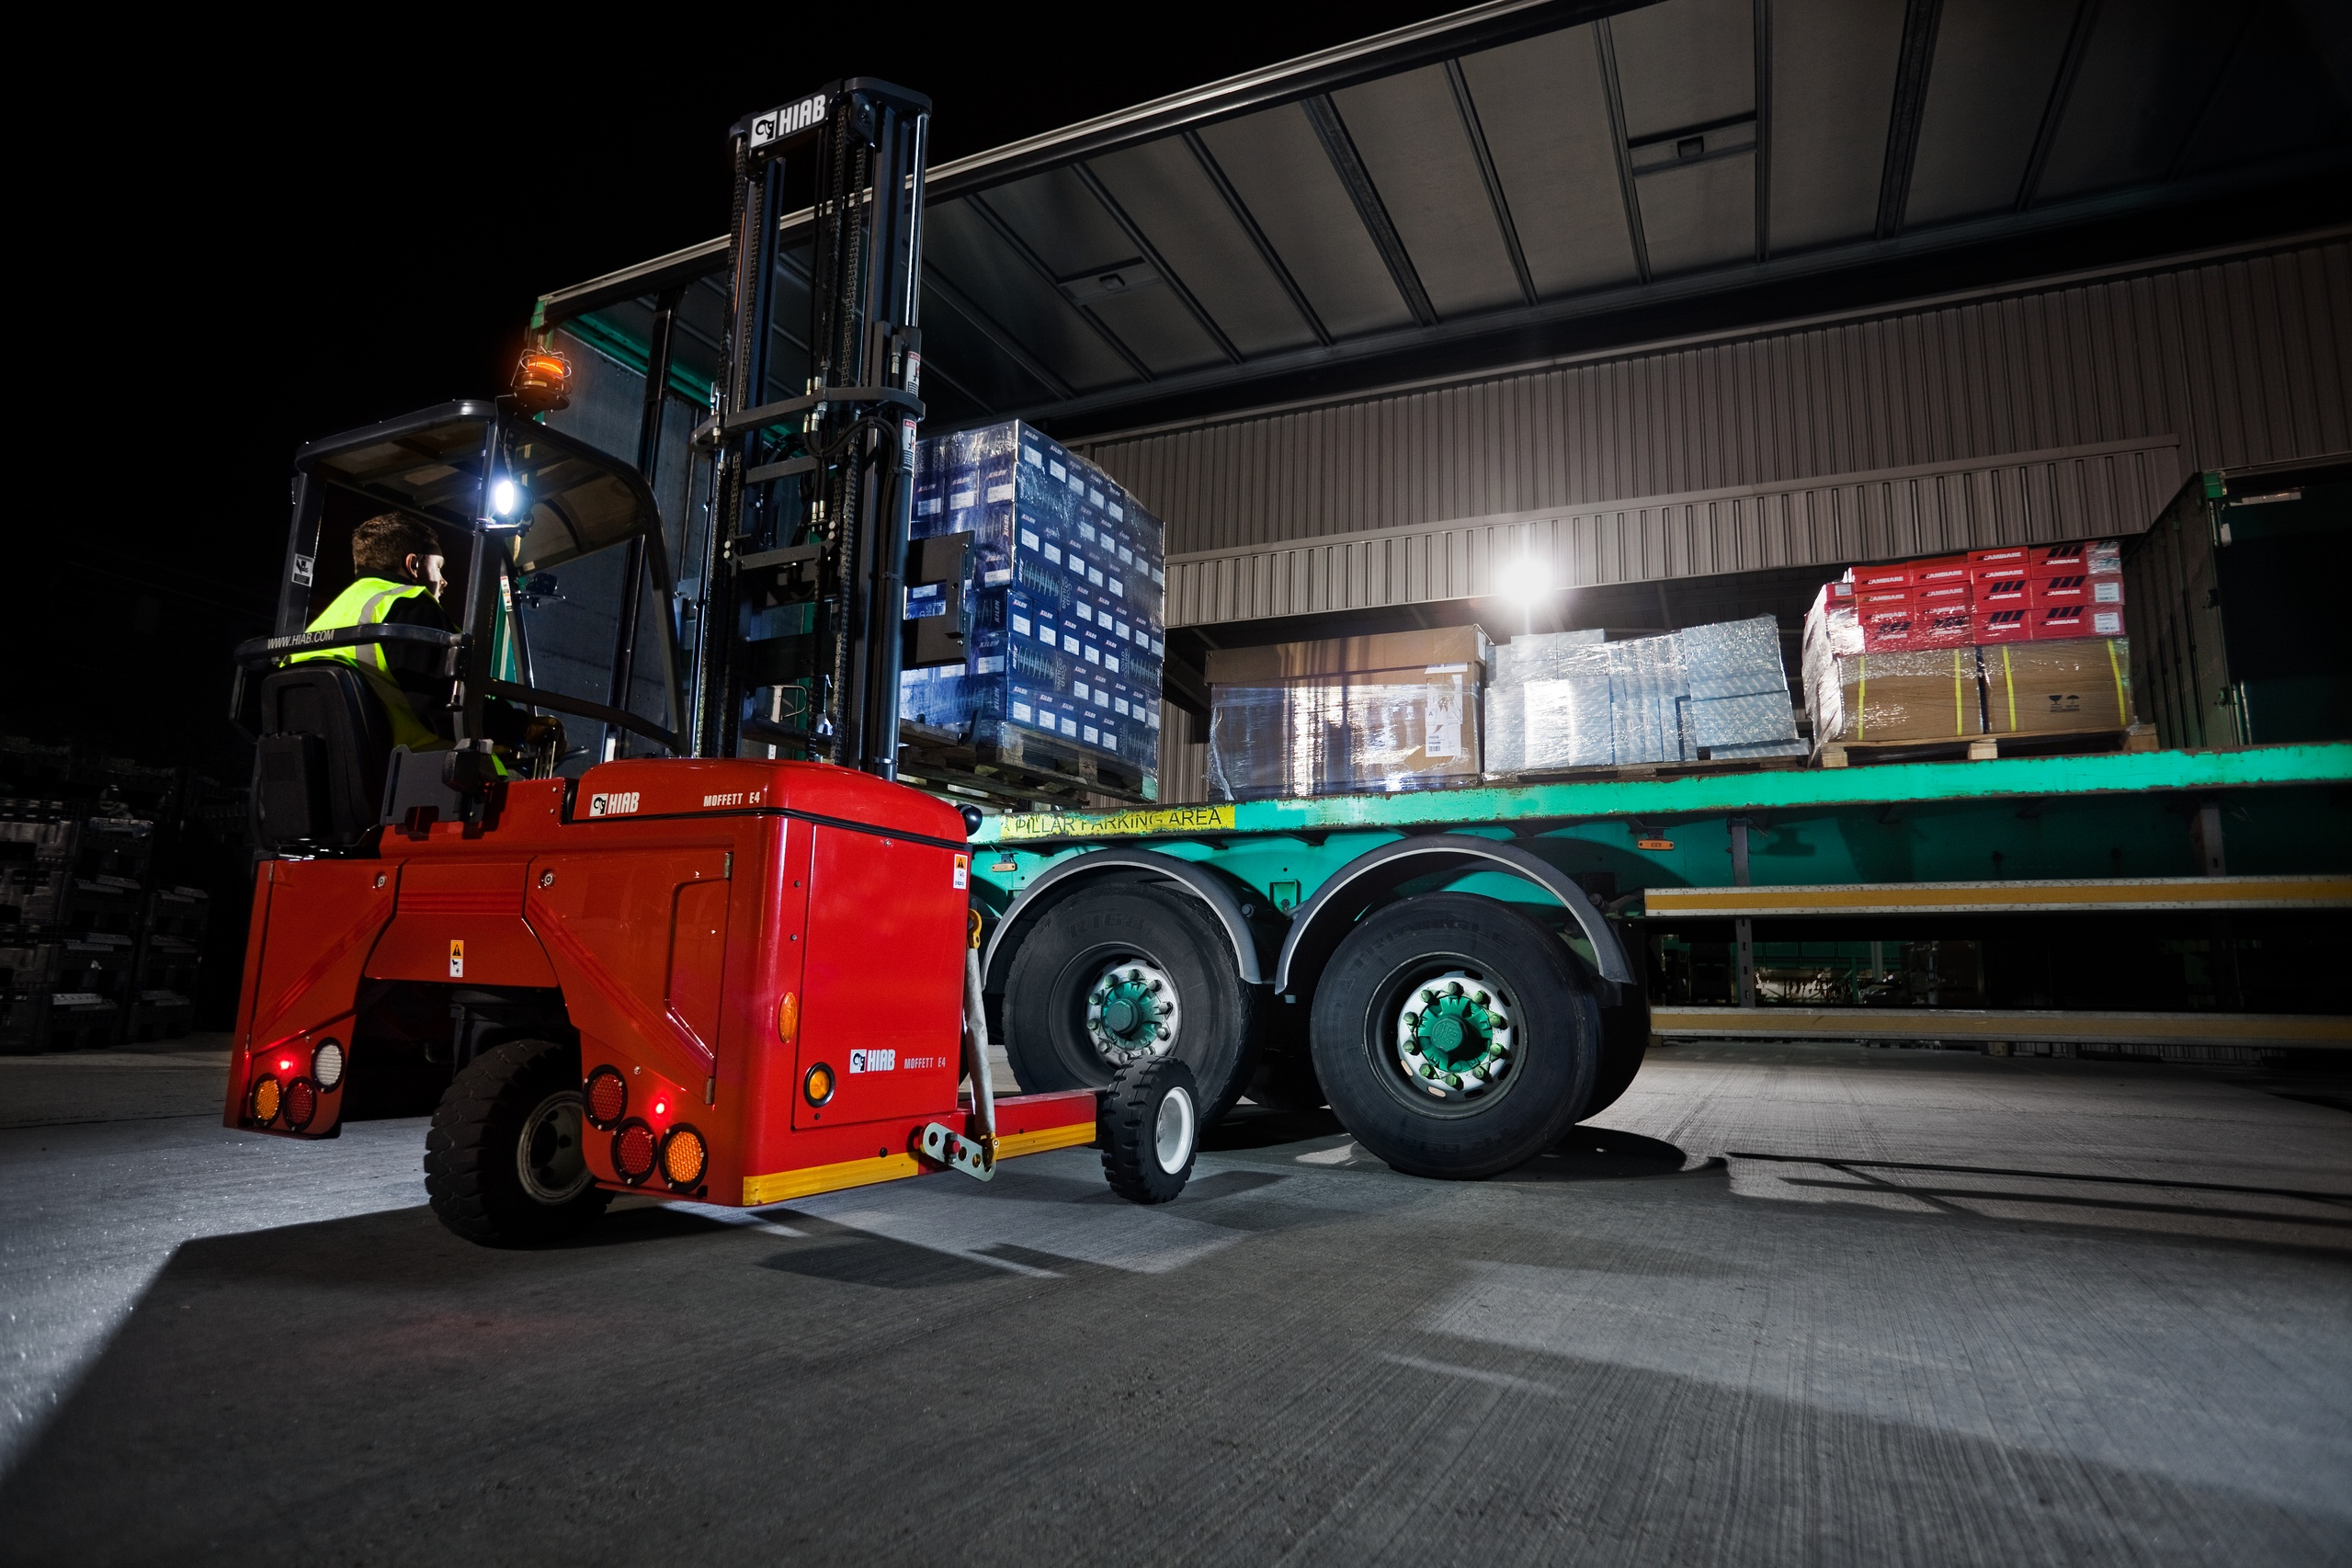 MOFFETT E4 at night-time use